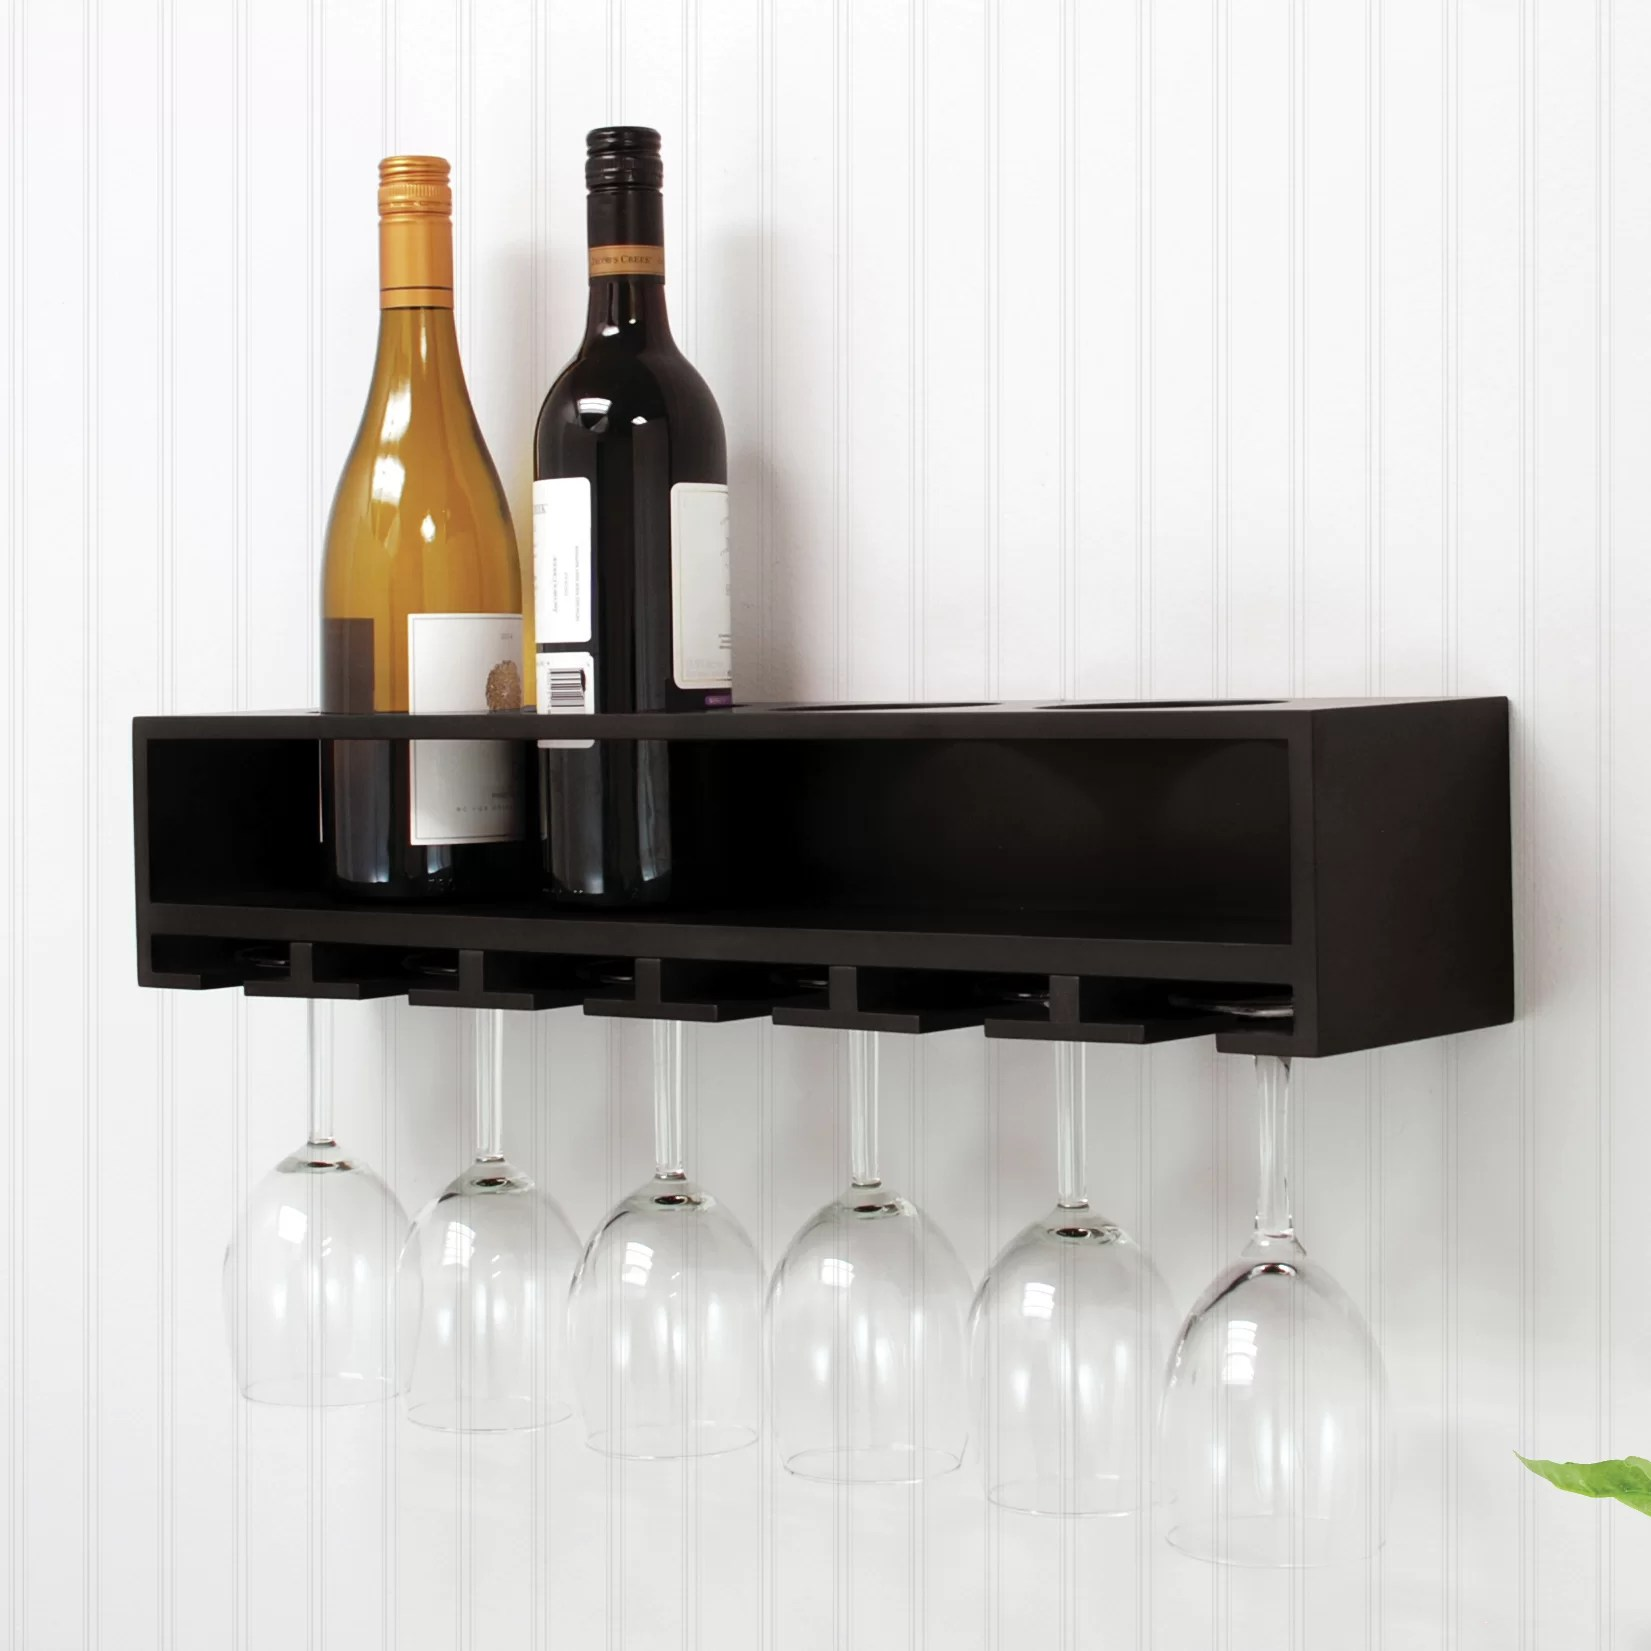 Hanging Bottle Rack Nexxt Design 4 Bottle Wall Mounted Wine Rack And Reviews